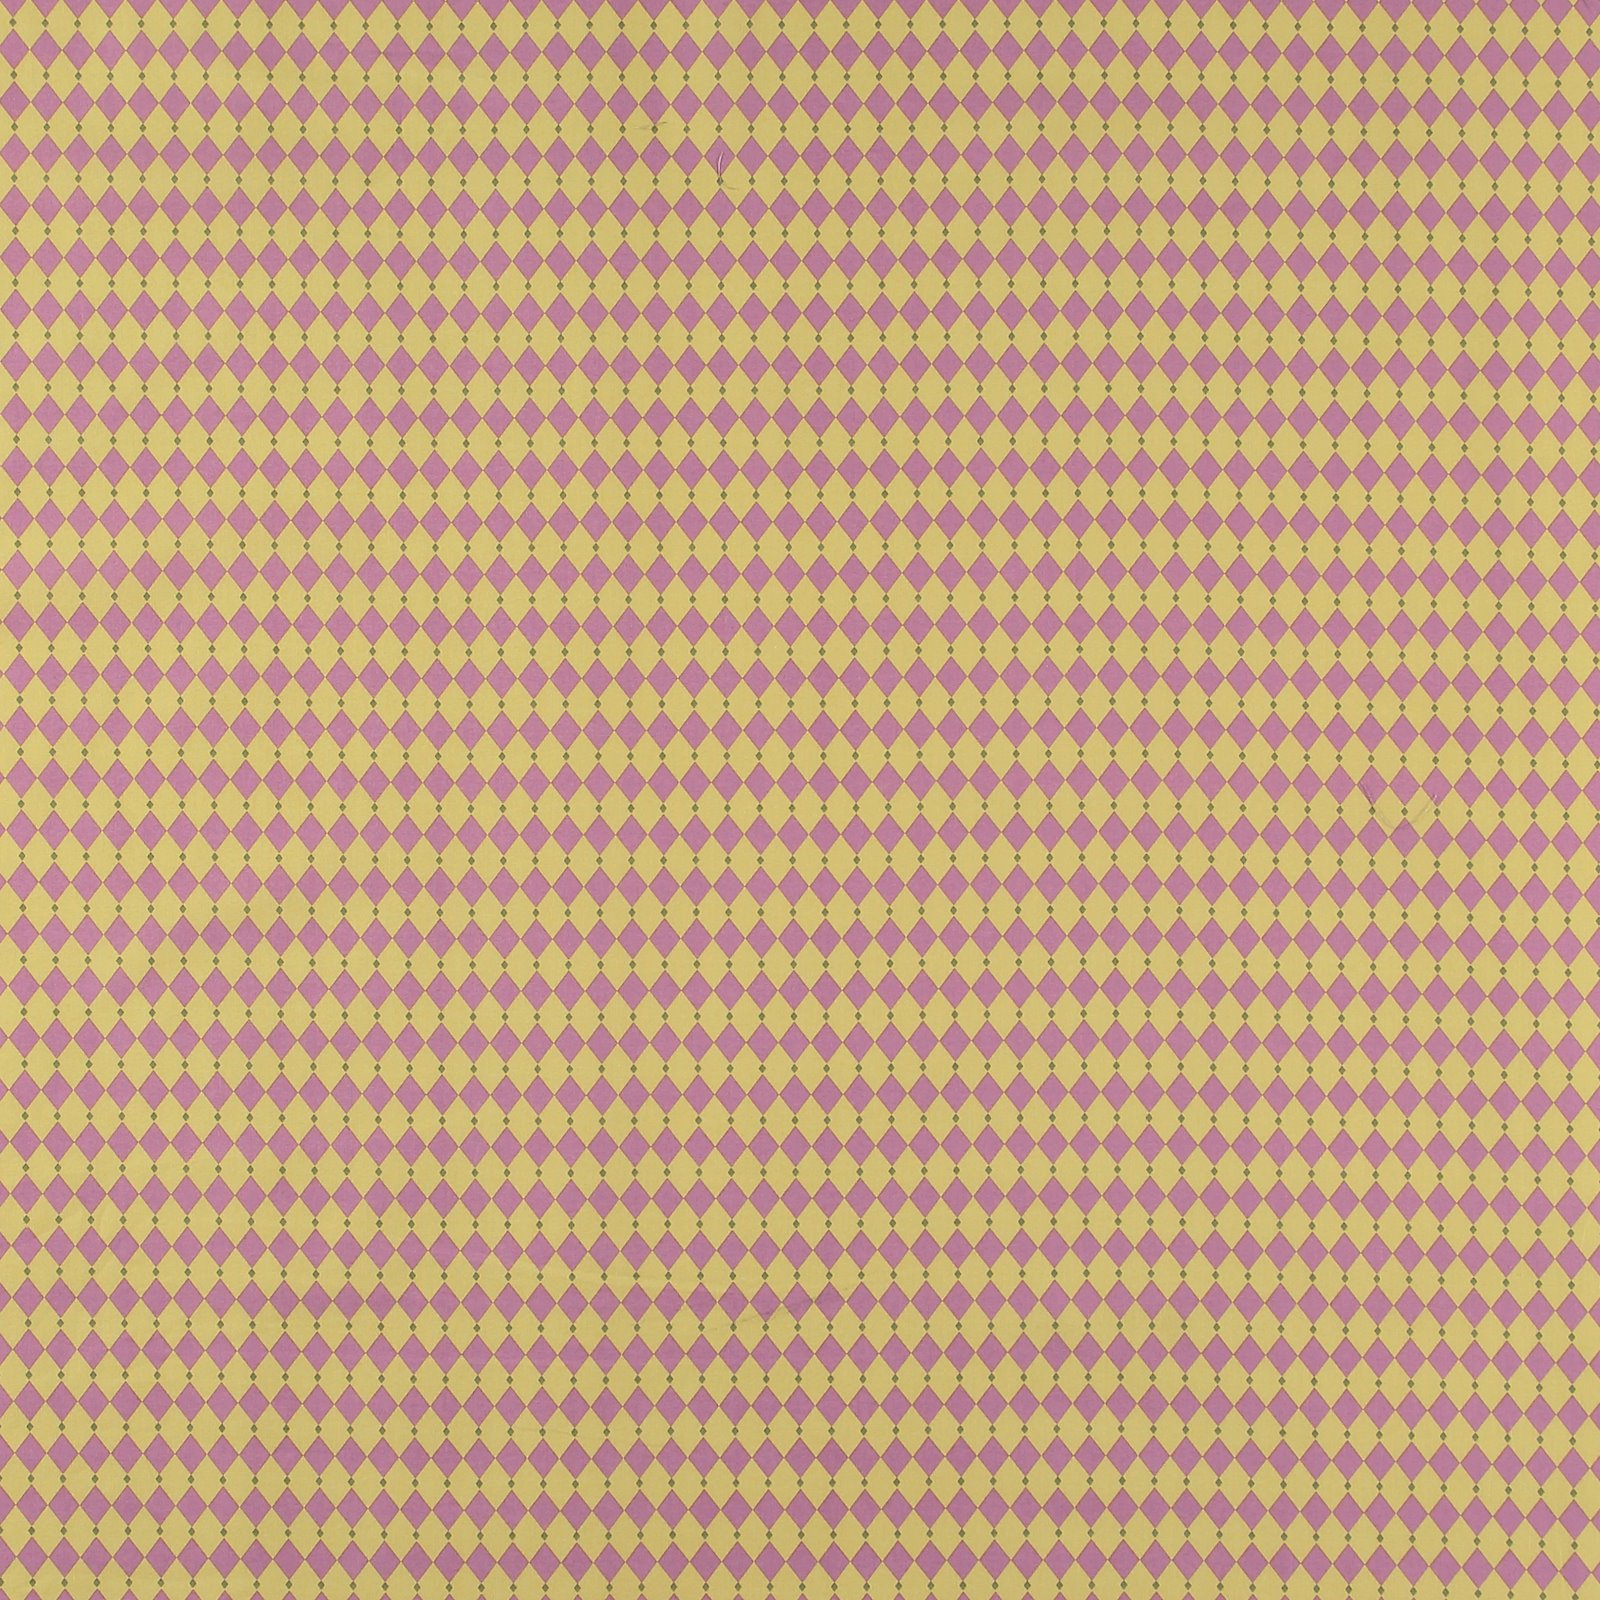 Cotton olive yellow and violet diamonds 852411_pack_sp